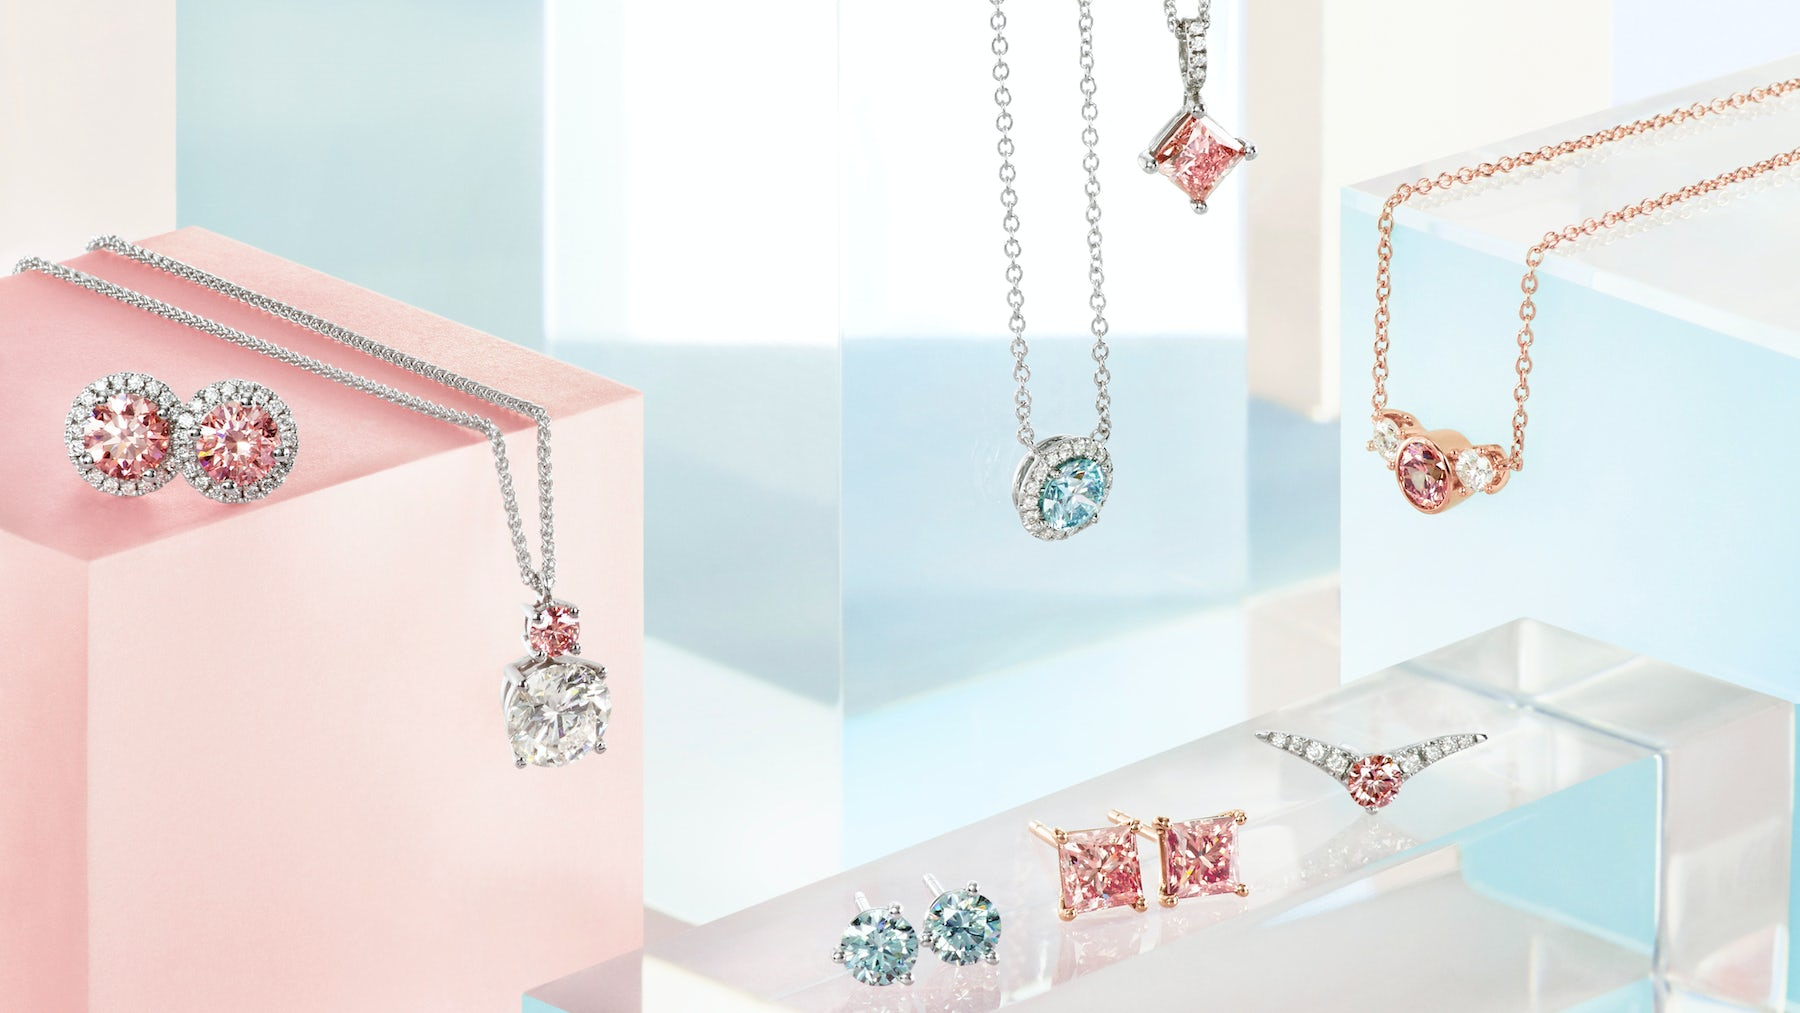 Jewellery from the new Lightbox line | Source: Courtesy